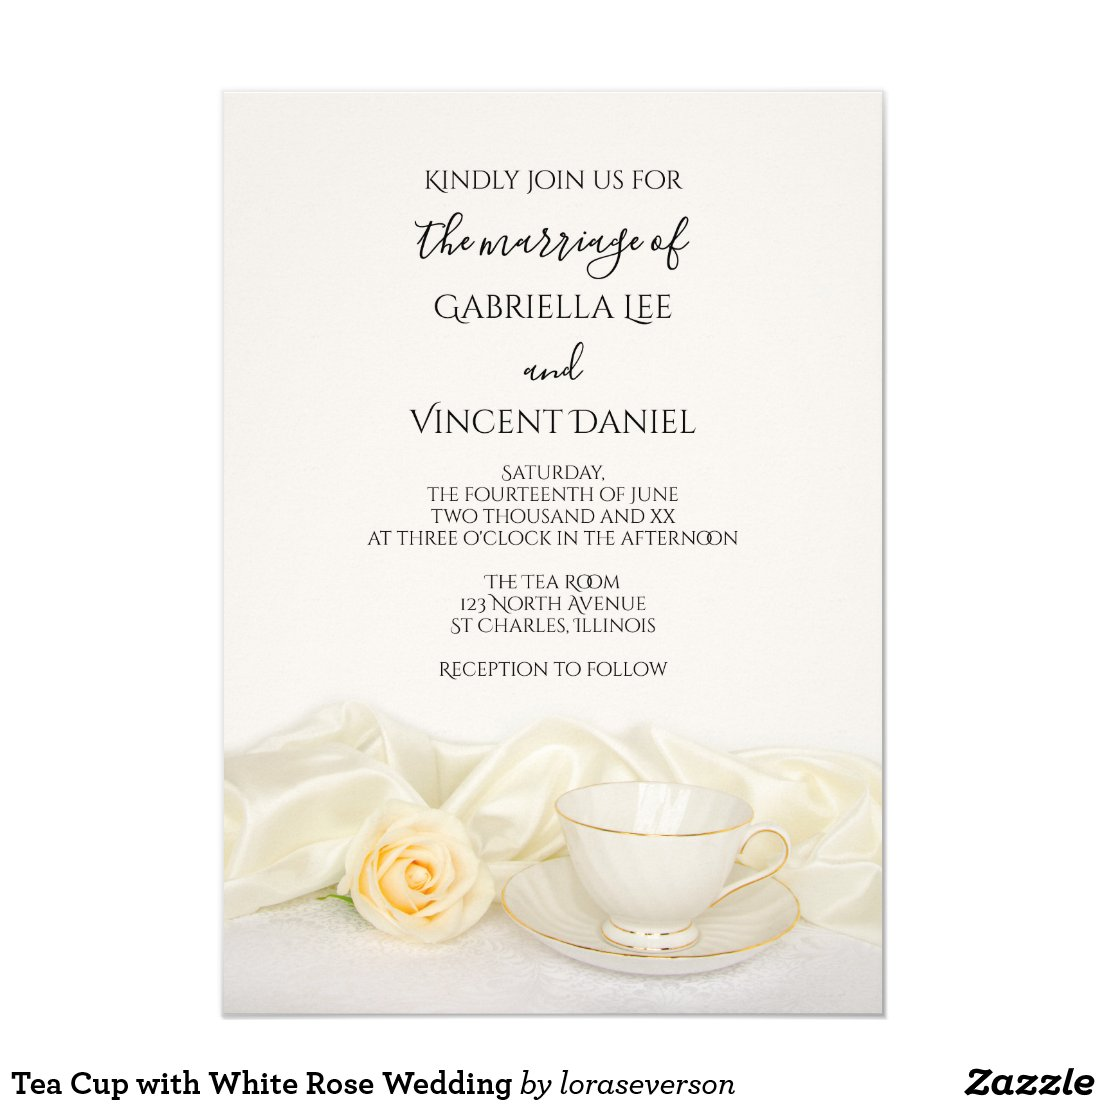 Tea Cup with White Rose Wedding Invitation